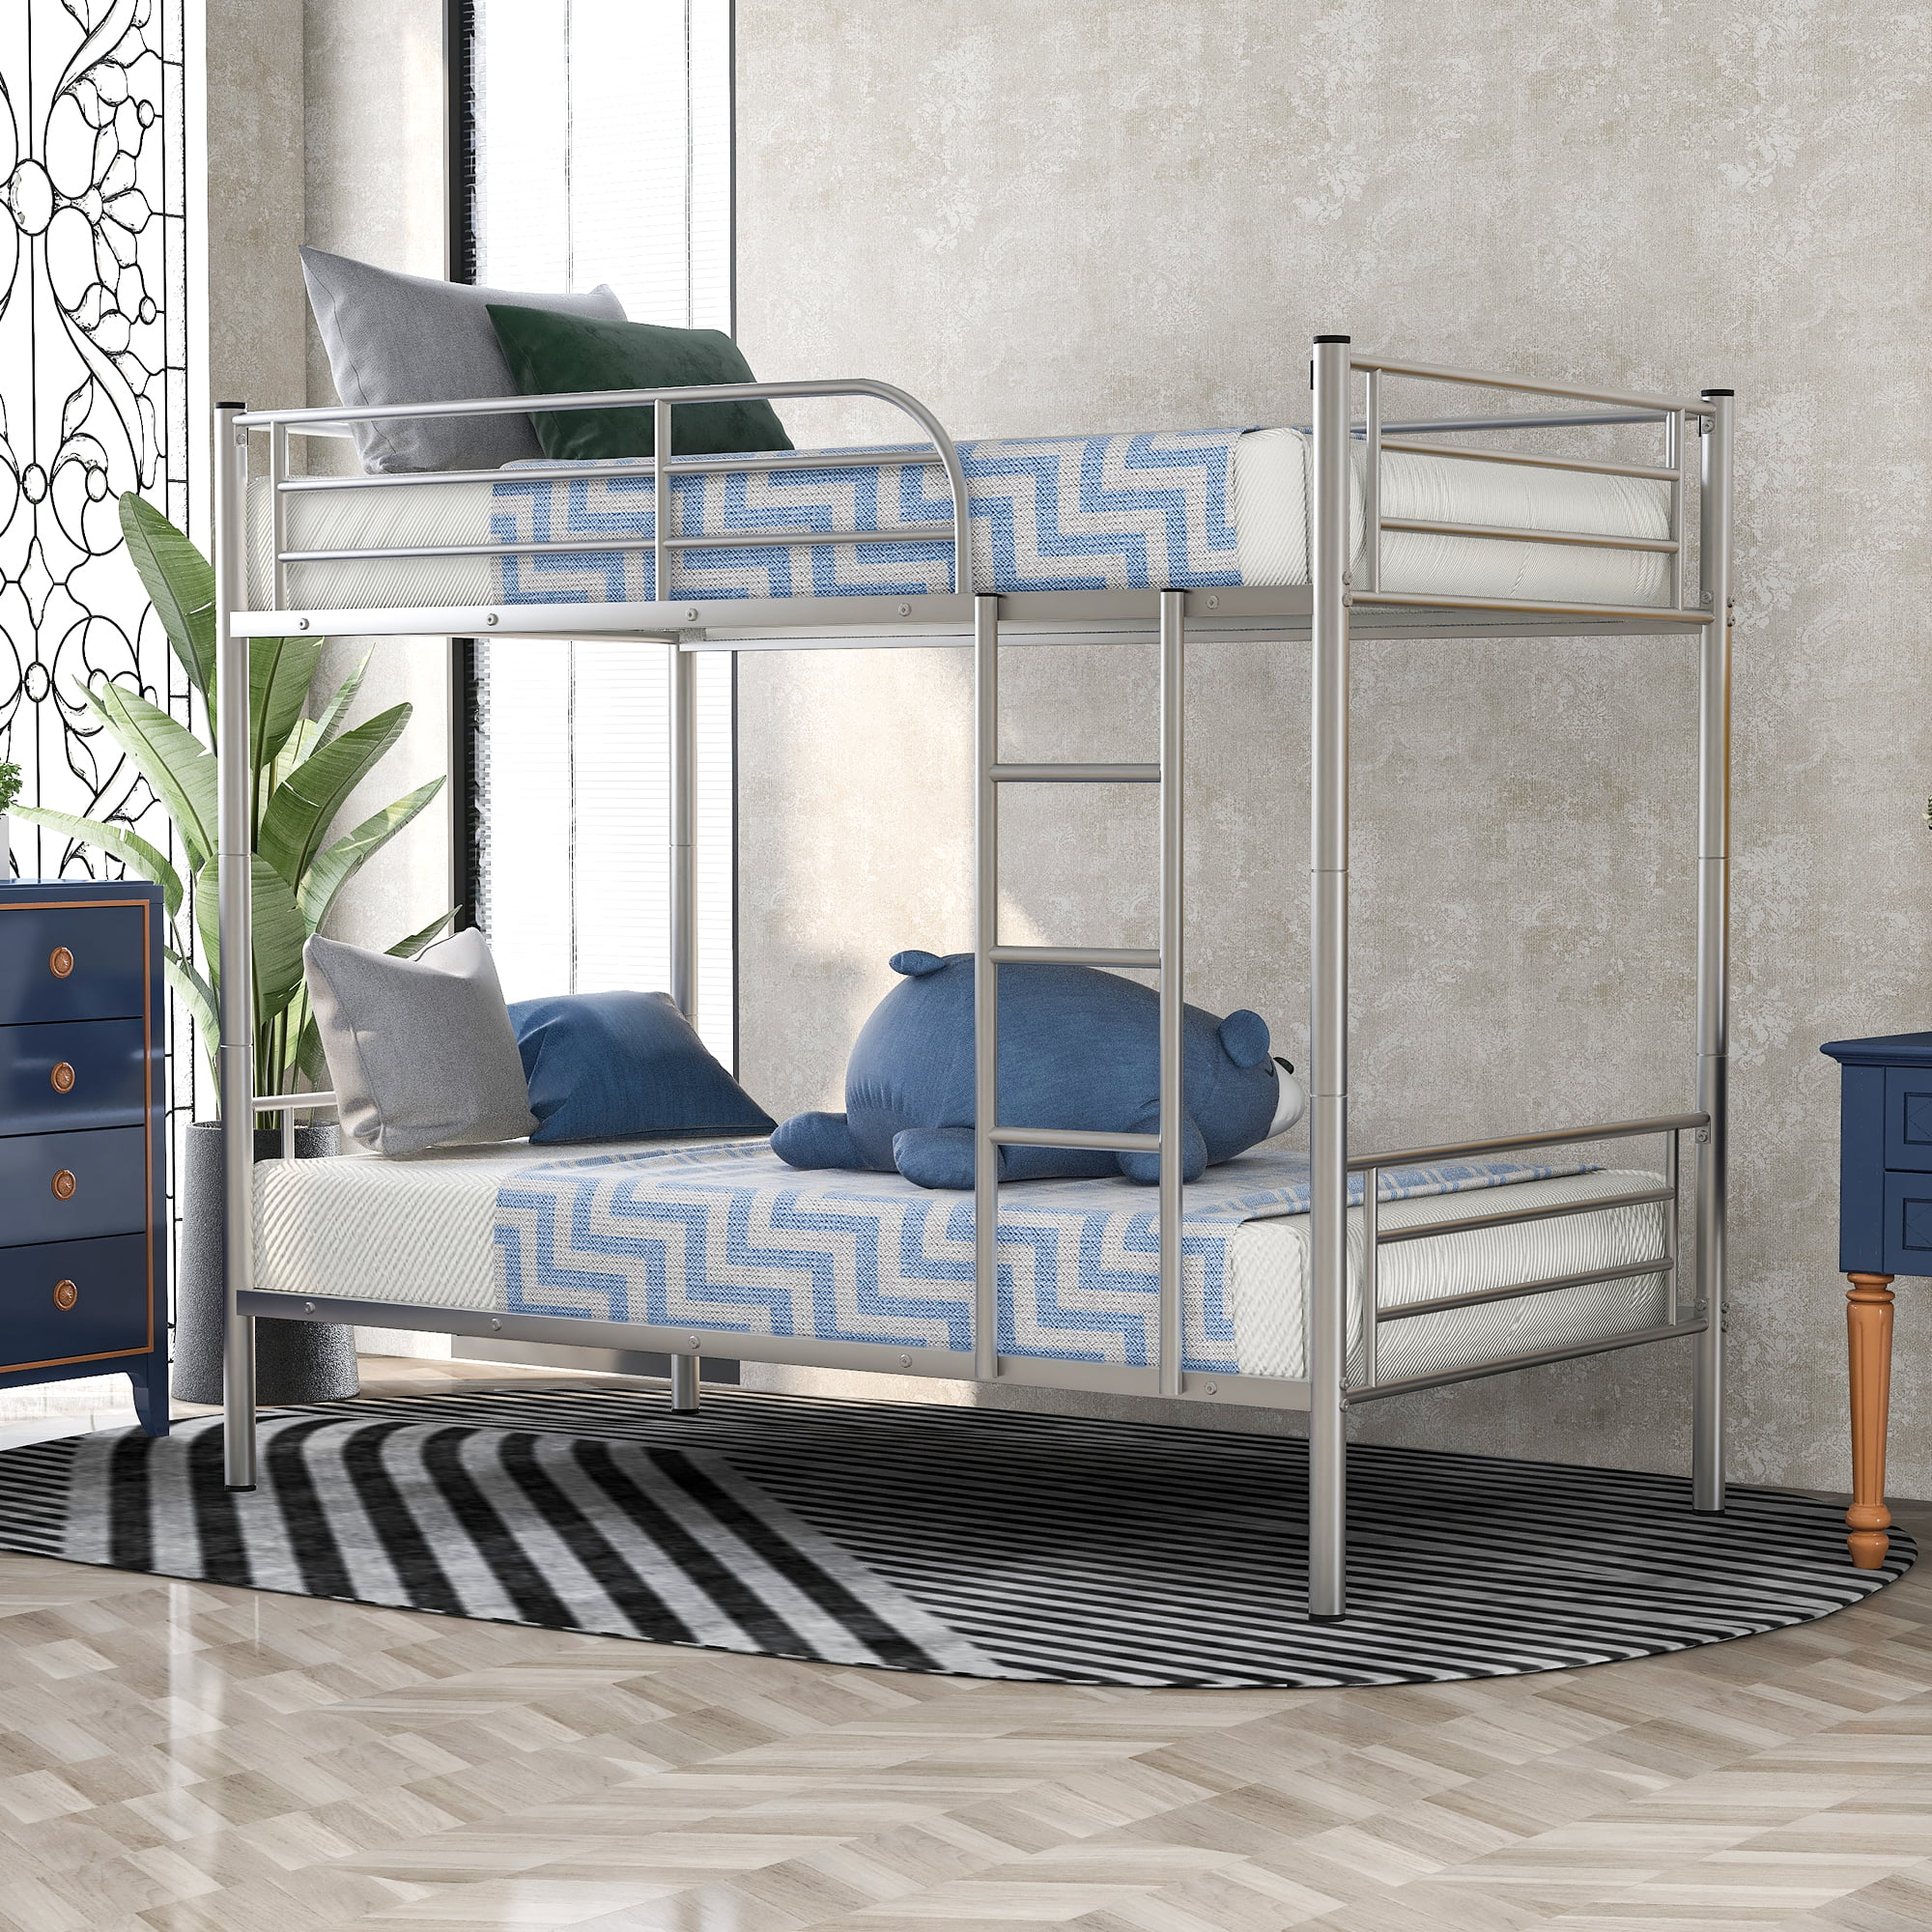 Bunk Beds For Kids Urhomepro Heavy Duty Twin Metal Bunk Beds For Teens Adults Bunk Beds Twin Over Twin With Removable Ladder Space Saving Design Loft Bed For Office Dorm School Home Gray